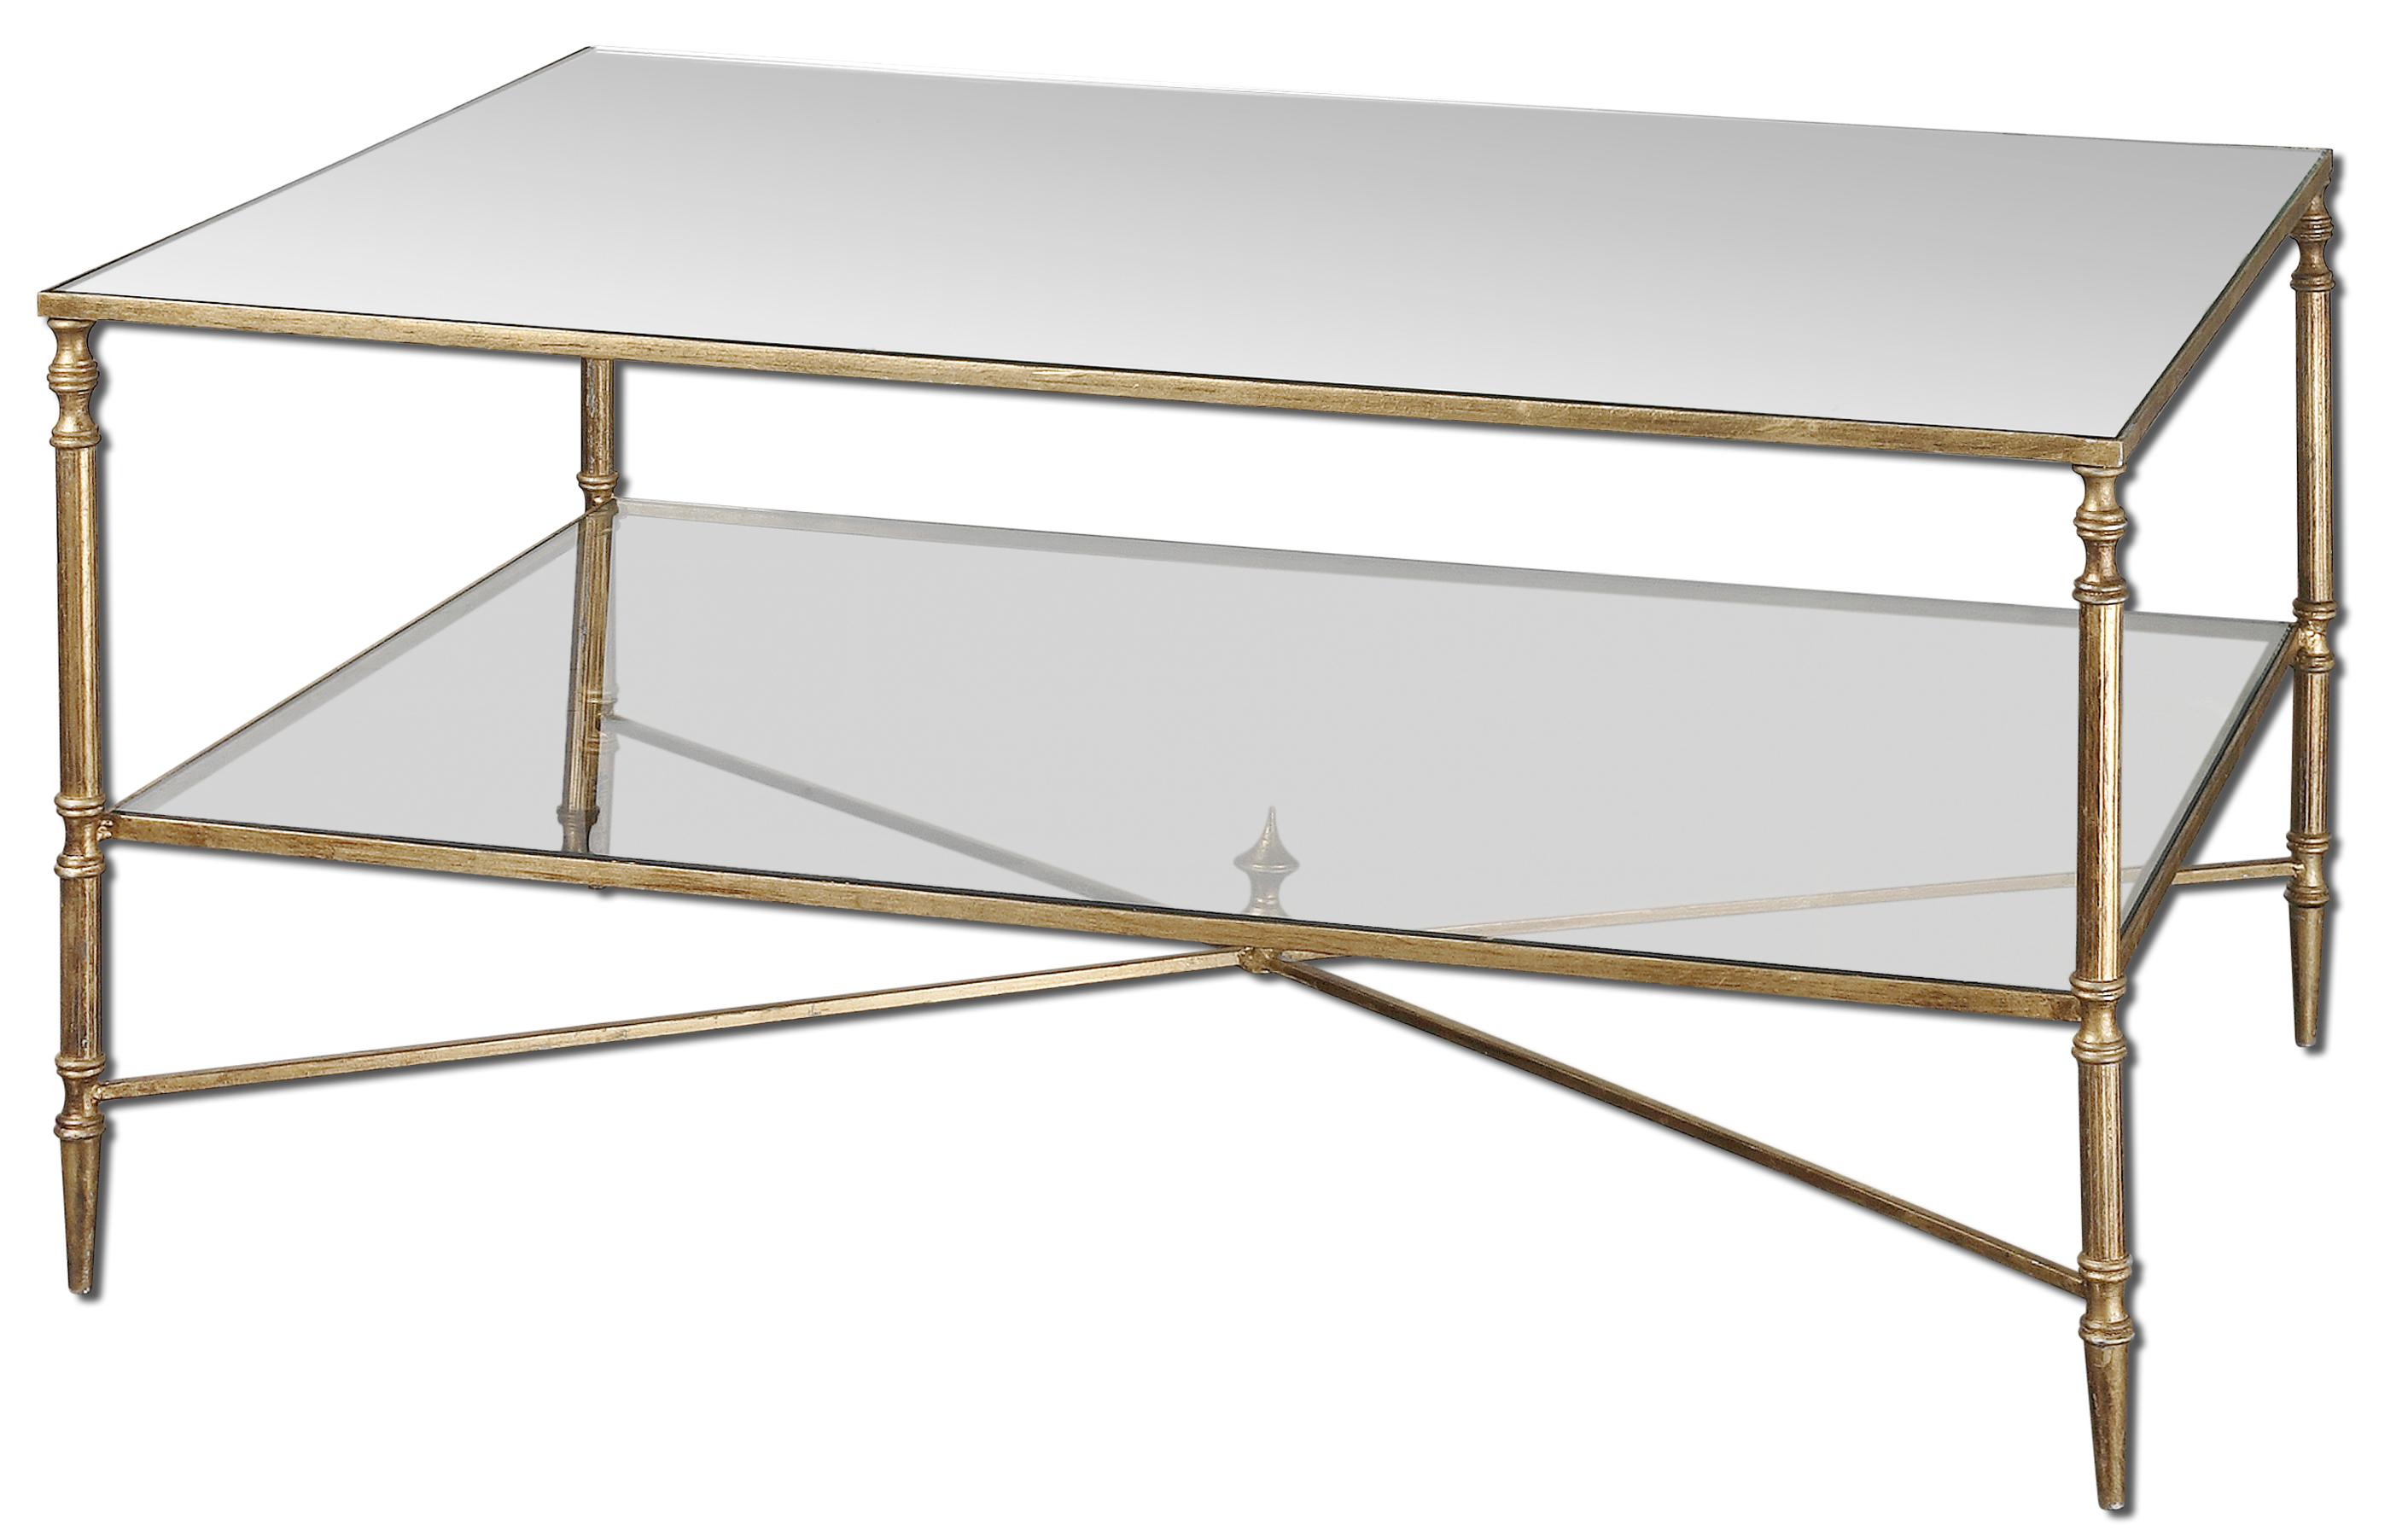 Accent Furniture - Occasional Tables Henzler Coffee Table by Uttermost at Goffena Furniture & Mattress Center